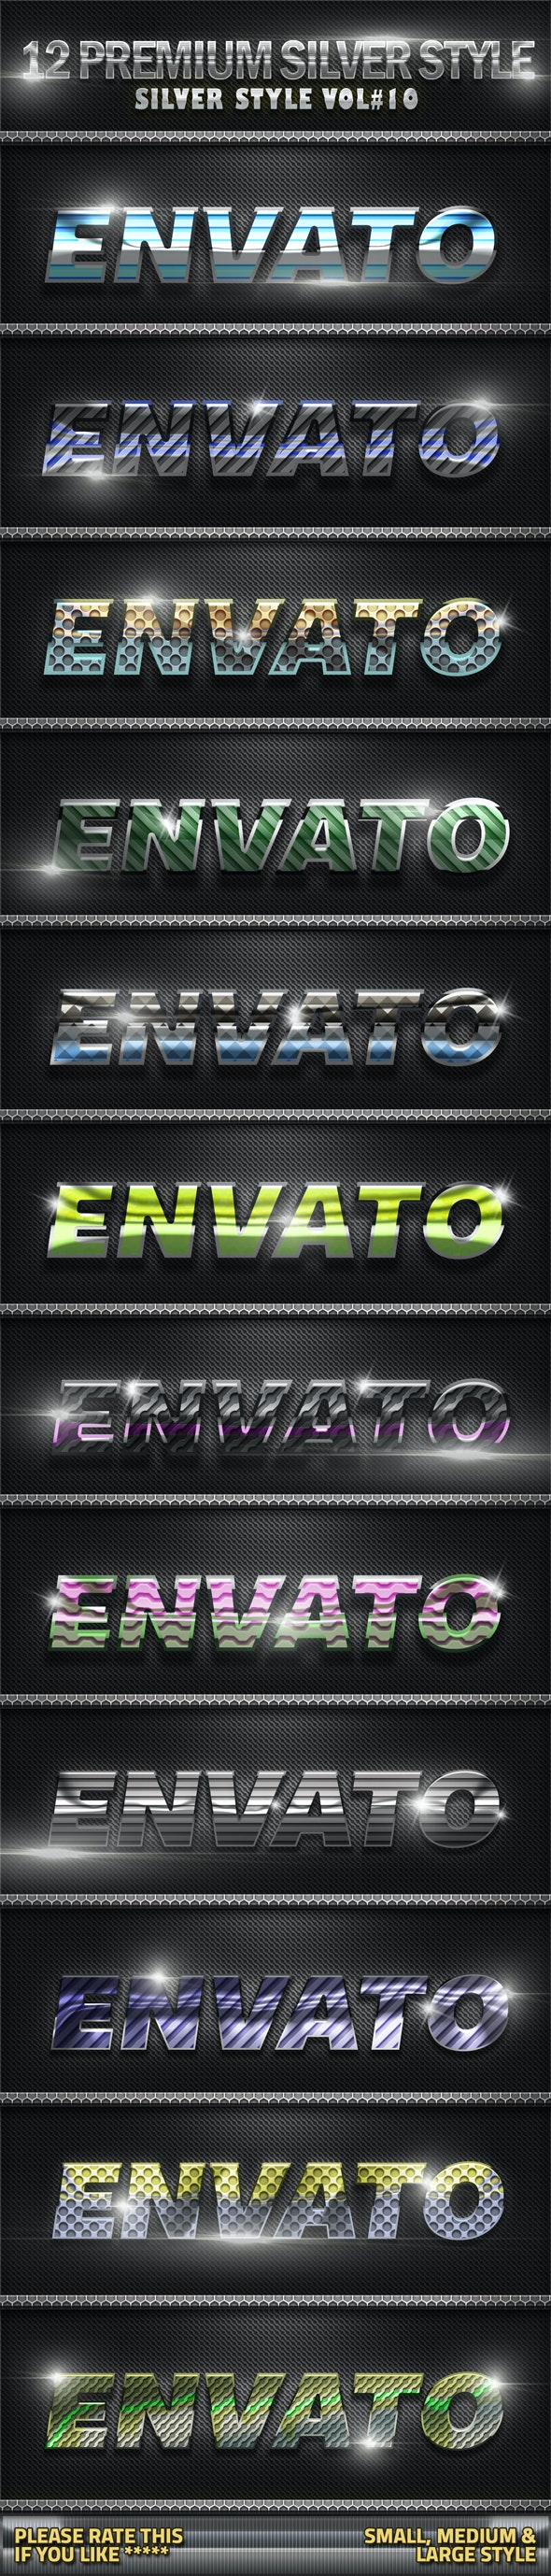 12 Metal Silver Photoshop Style V10 - Text Effects Styles